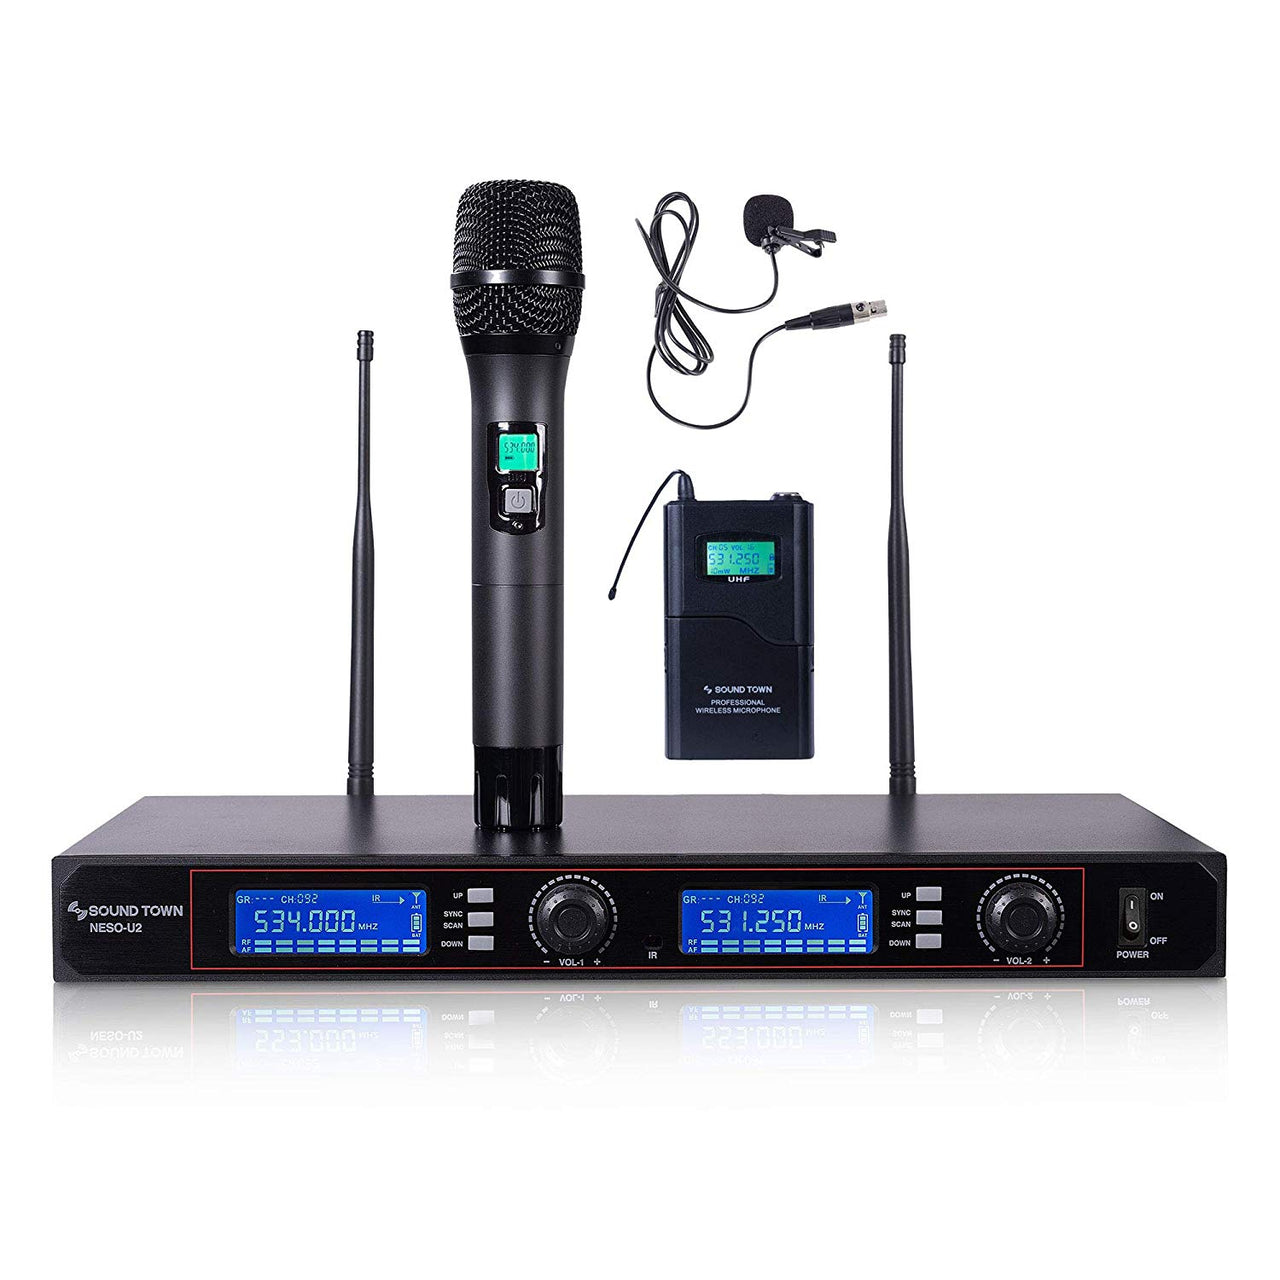 NESO-U2HL <br/> 200-Channel Rack Mountable Professional UHF Wireless Microphone System w/ Metal Receiver, Handheld Mic, Lavalier Mic, Bodypack